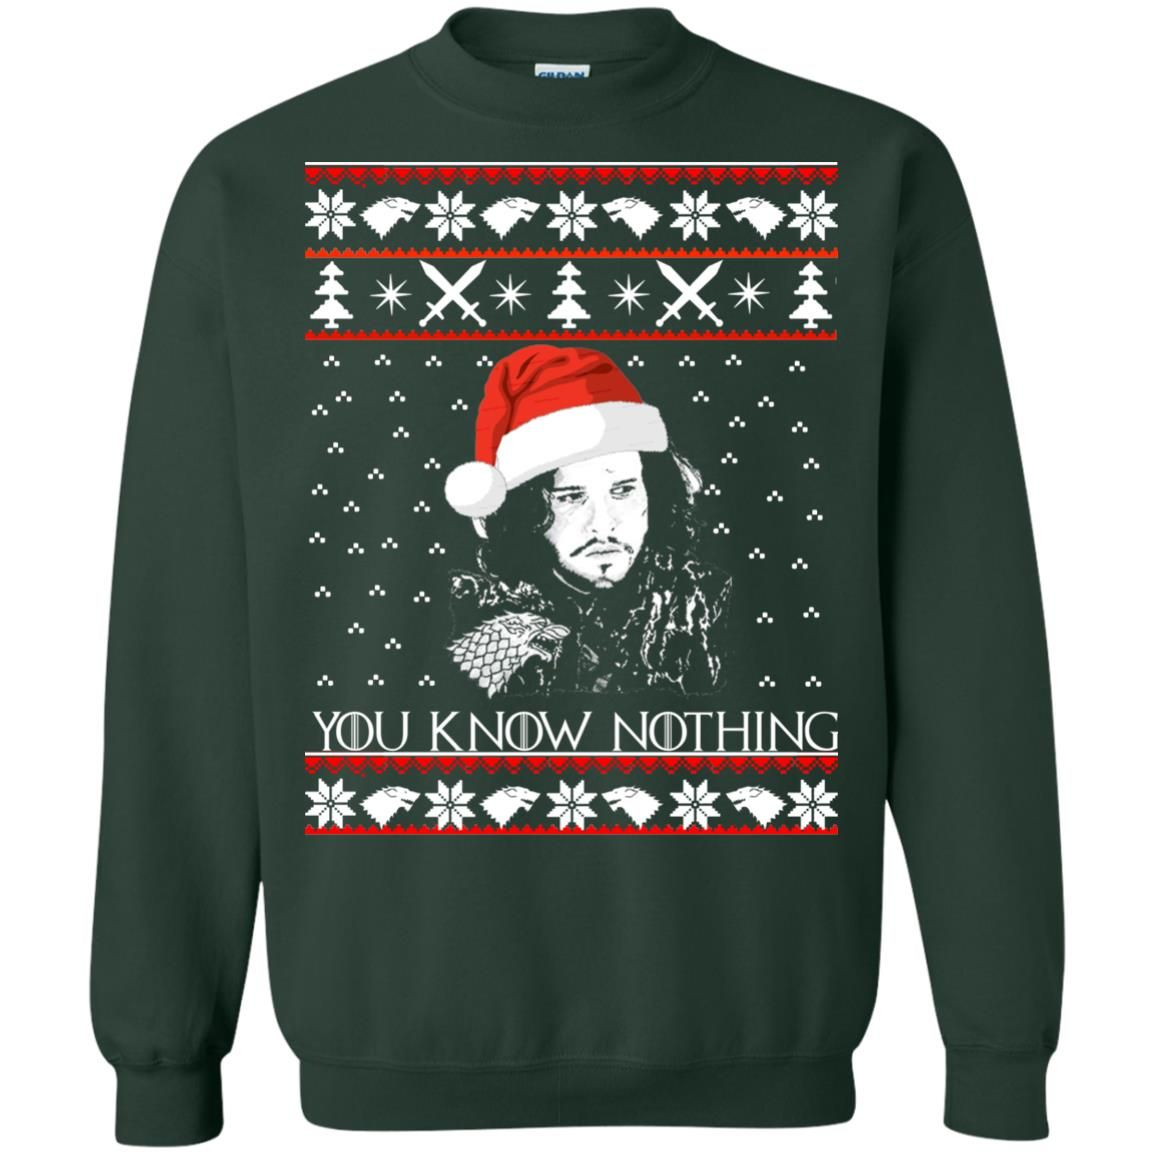 image 775 - Jon Snow: You Know Nothing Ugly Christmas Sweater, long sleeve